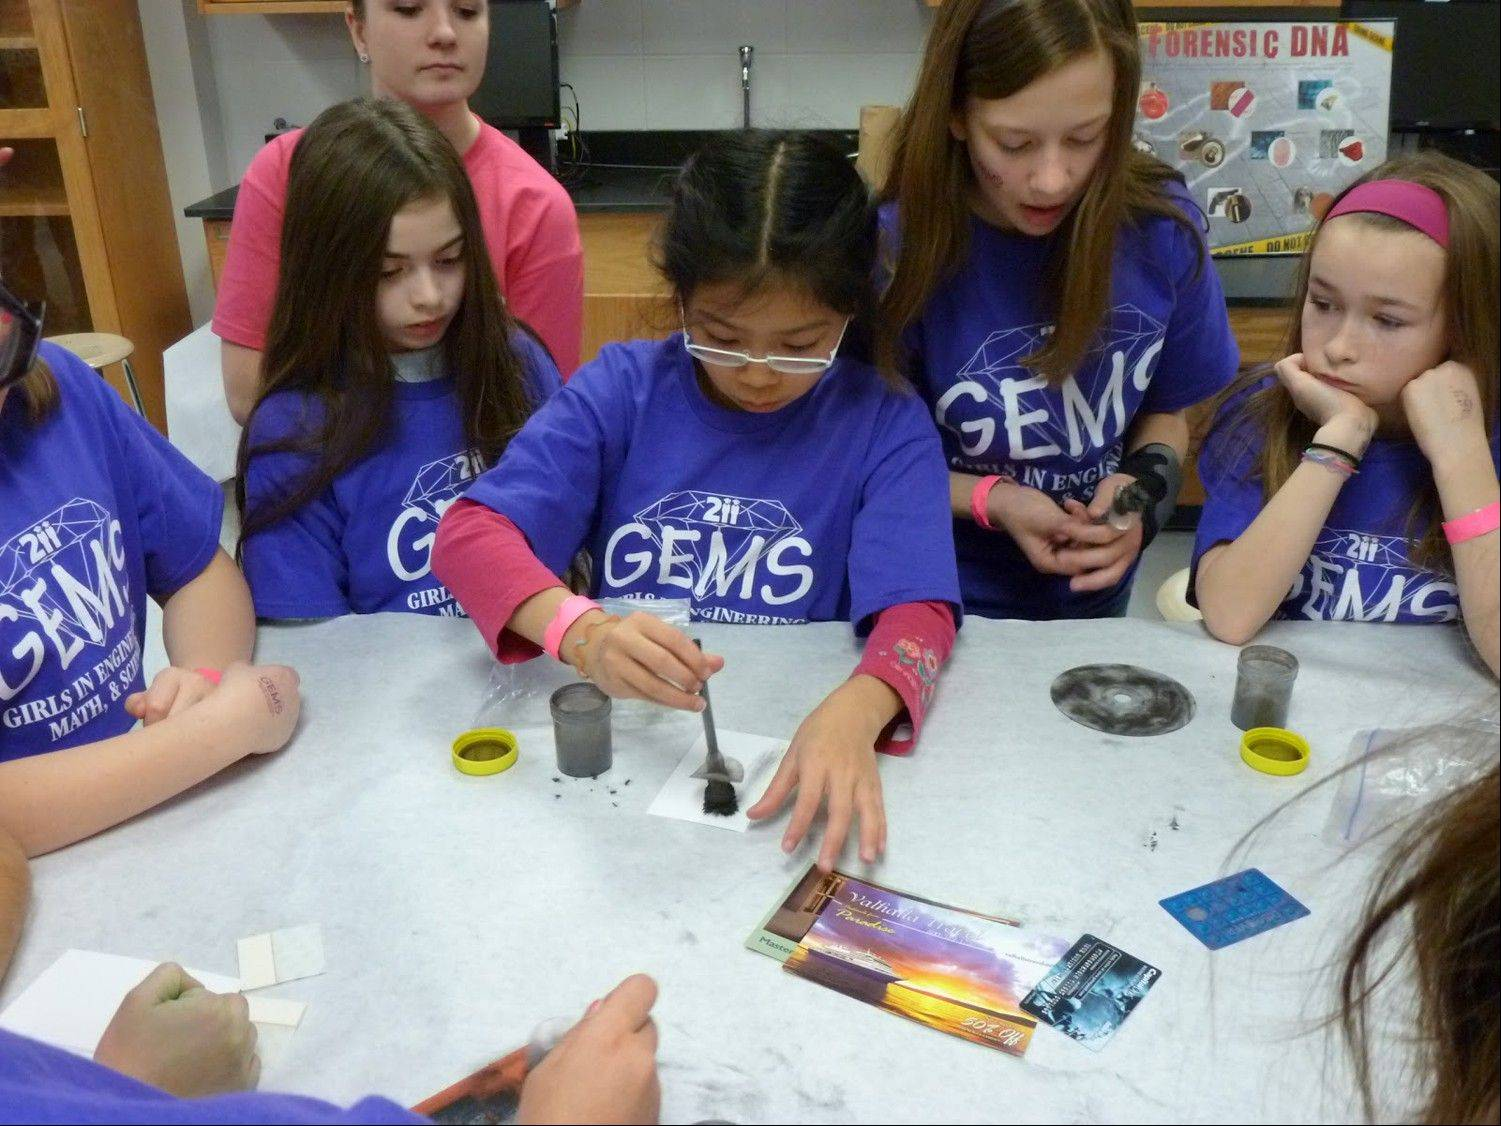 A team of girls works on a science project at the conference.